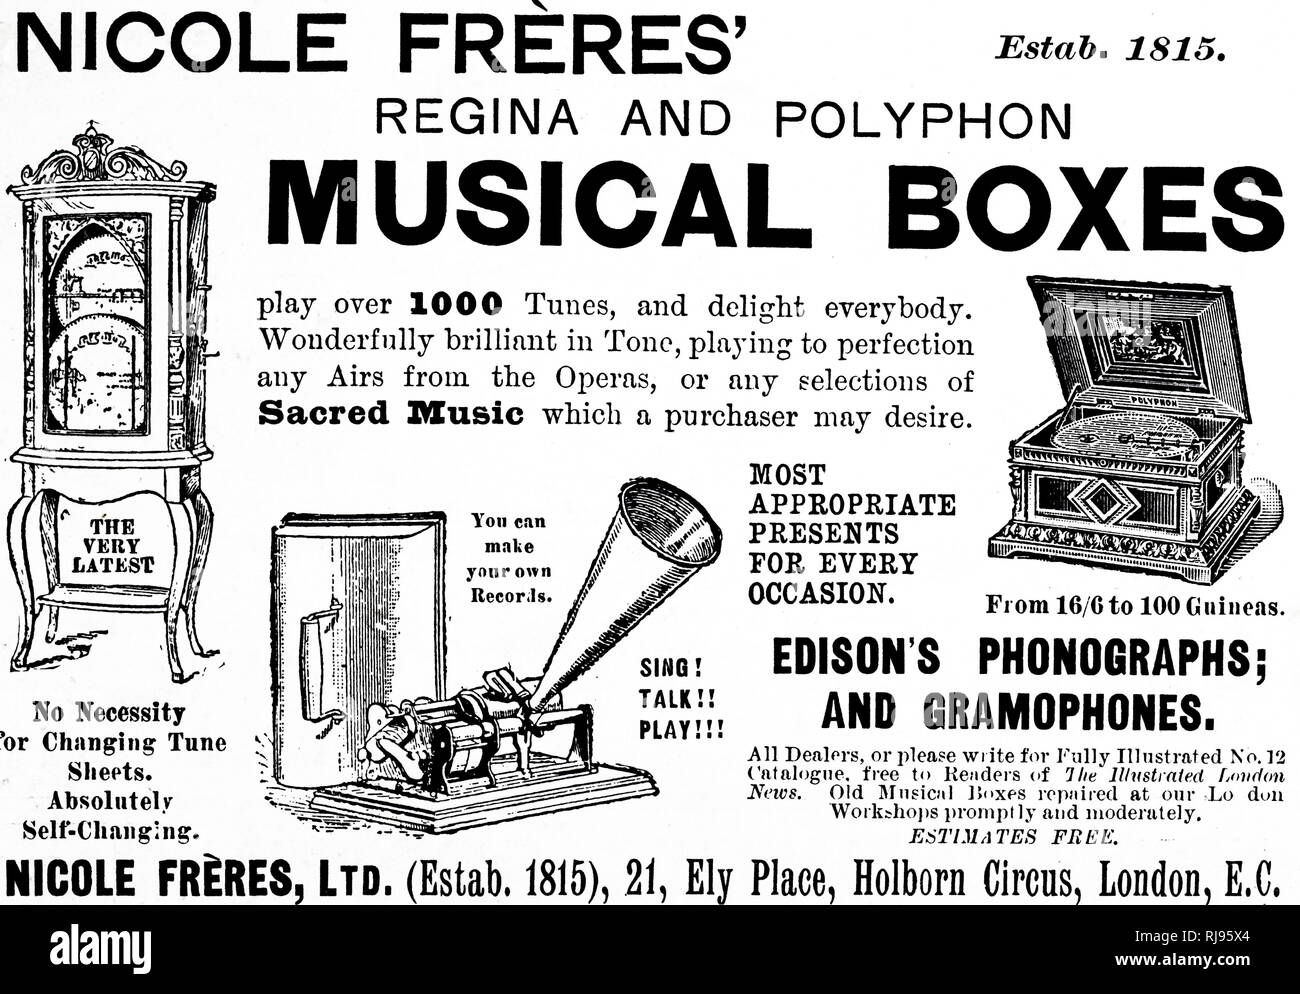 An advertisement for Nicole Frere's Regina and Polyphon musical boxes. Dated 20th century - Stock Image